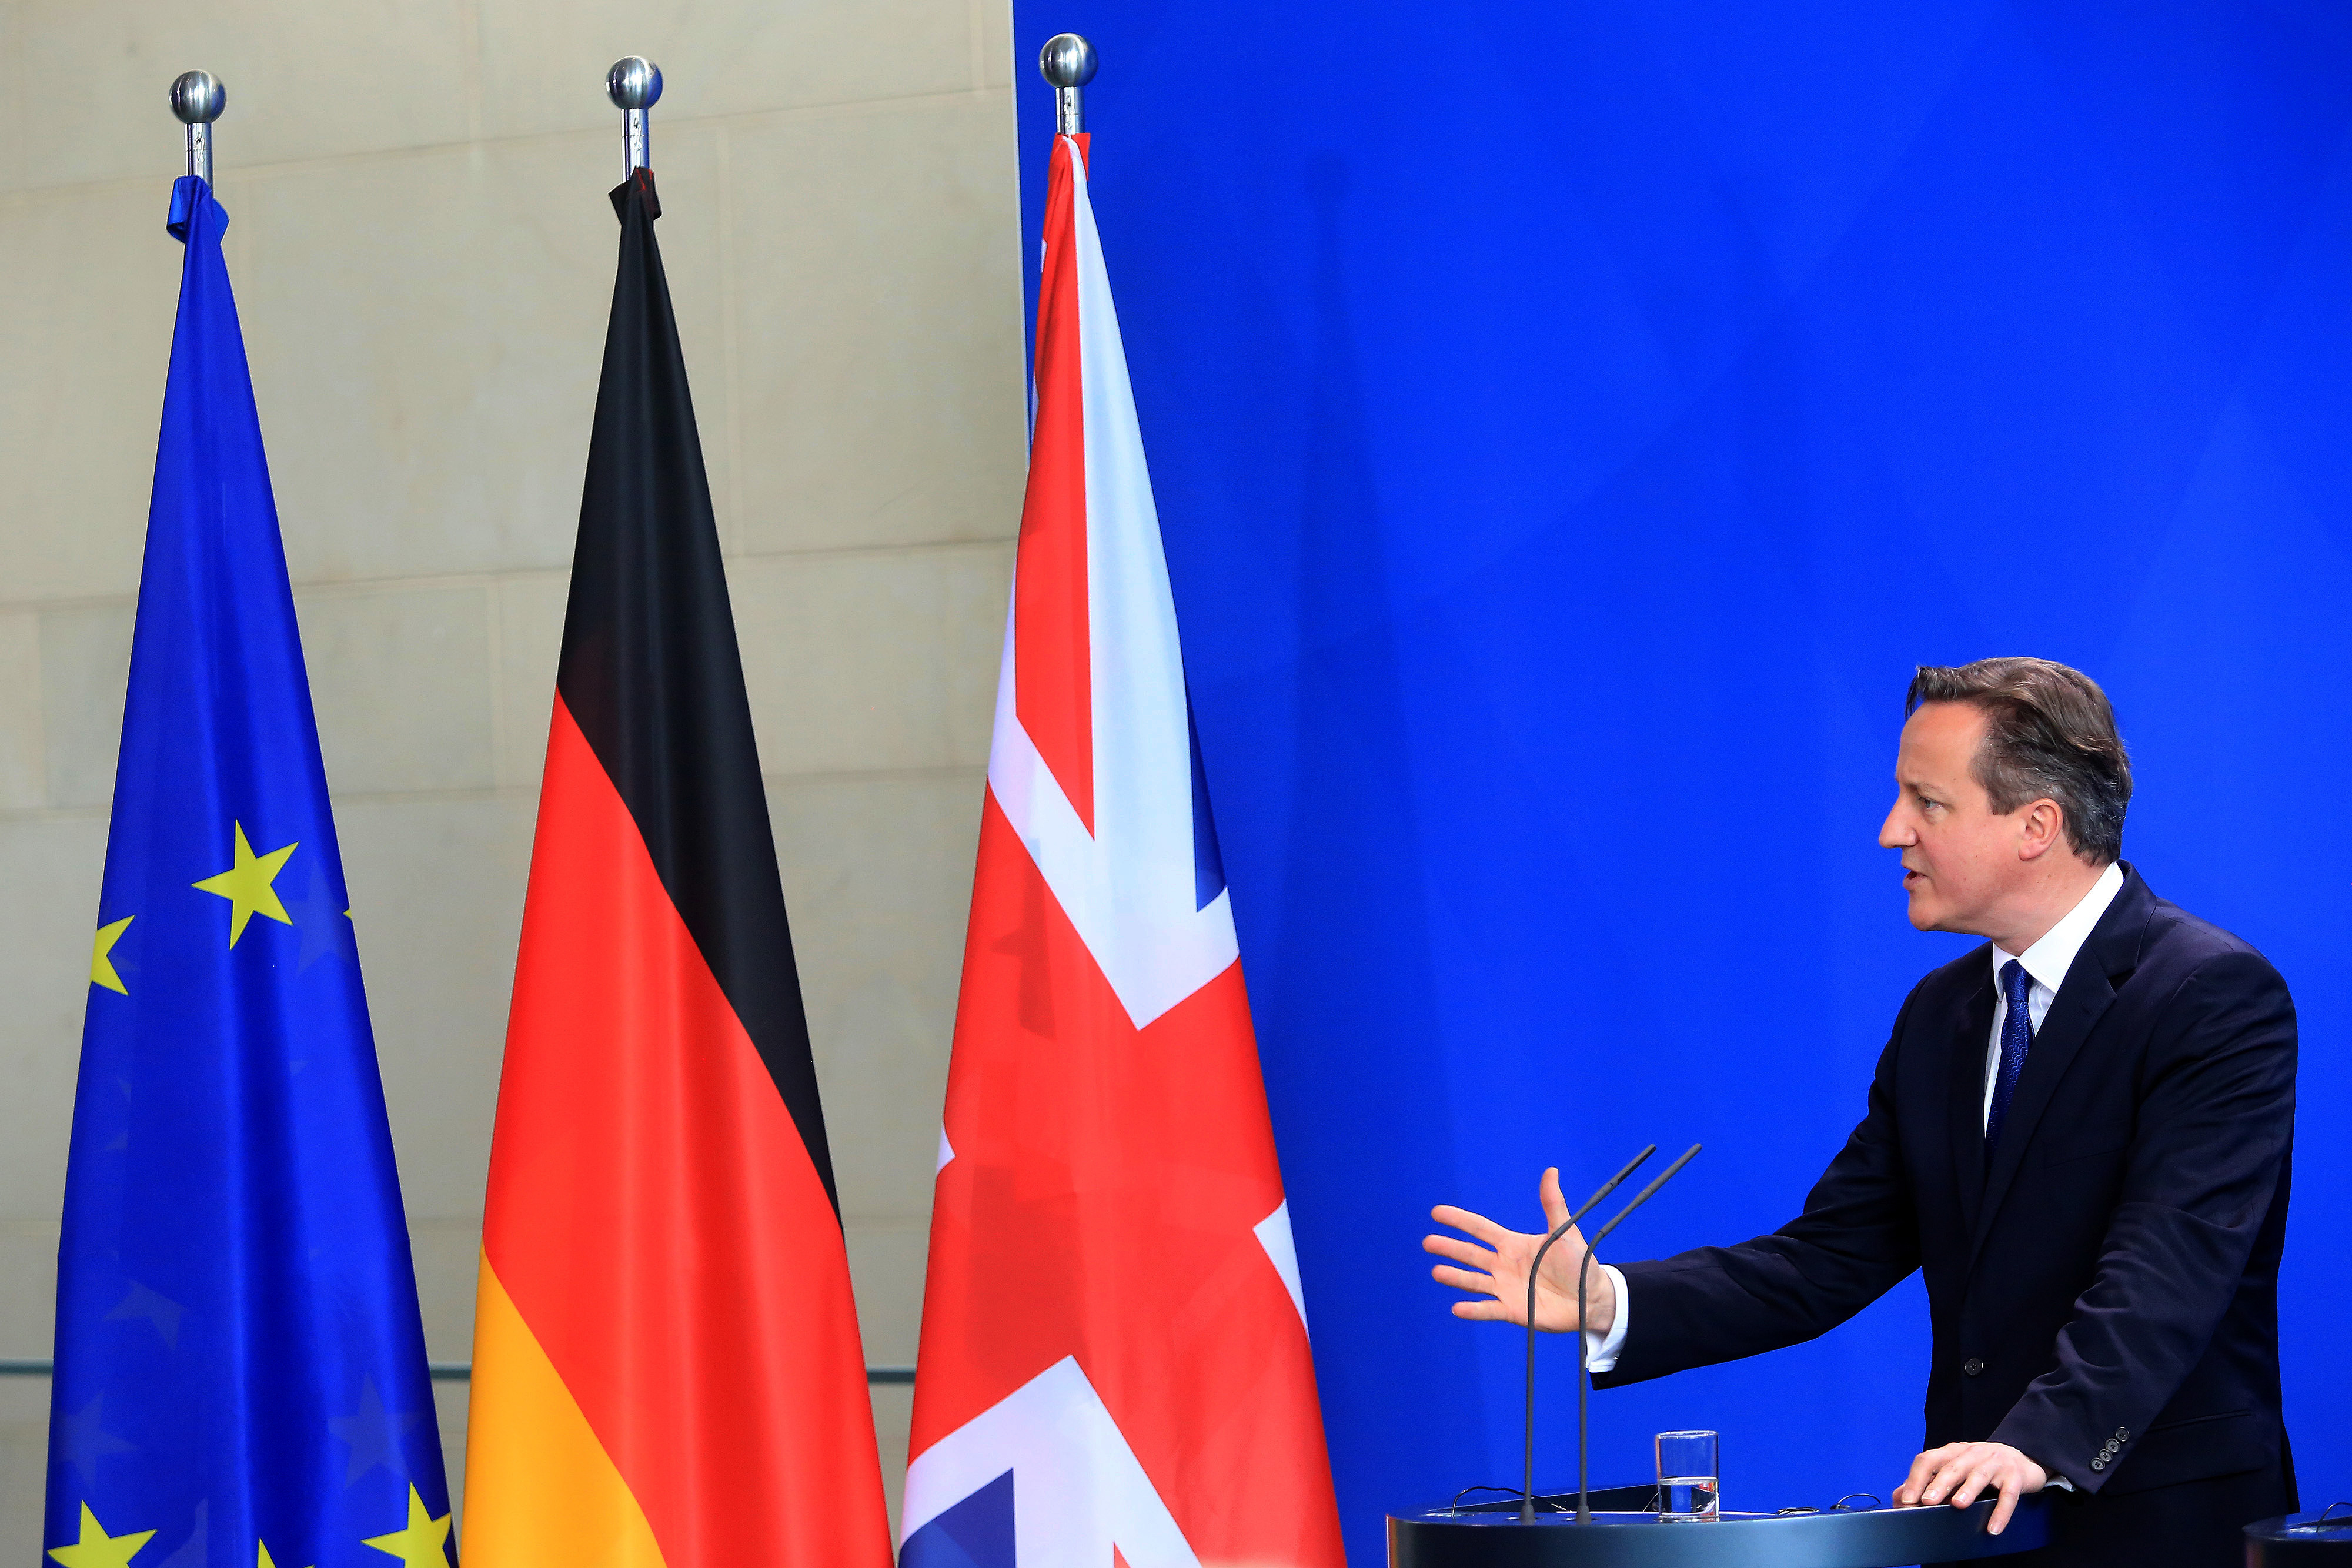 David Cameron, U.K. prime minister, gestures as he speaks during a news conference at the Chancellery in Berlin, Germany, on Friday, May 29, 2015. Chancellor Angela Merkel offered to help Cameron secure the changes he wants to Britain's relationship with the European Union, including the possibility of changing EU treaties if necessary